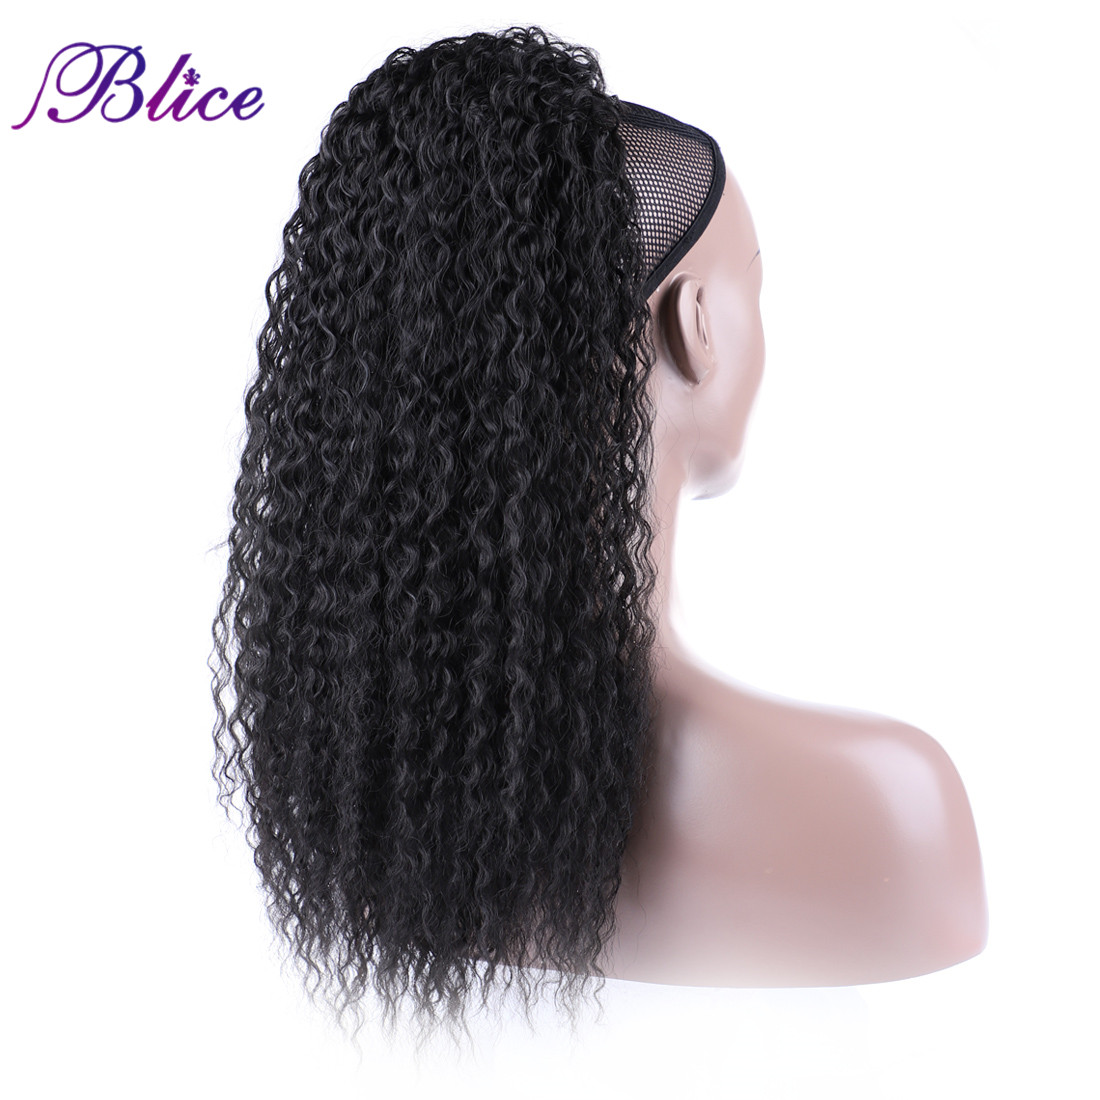 Blice Synthetic Afro Kinky Curly Hair Ponytail 18